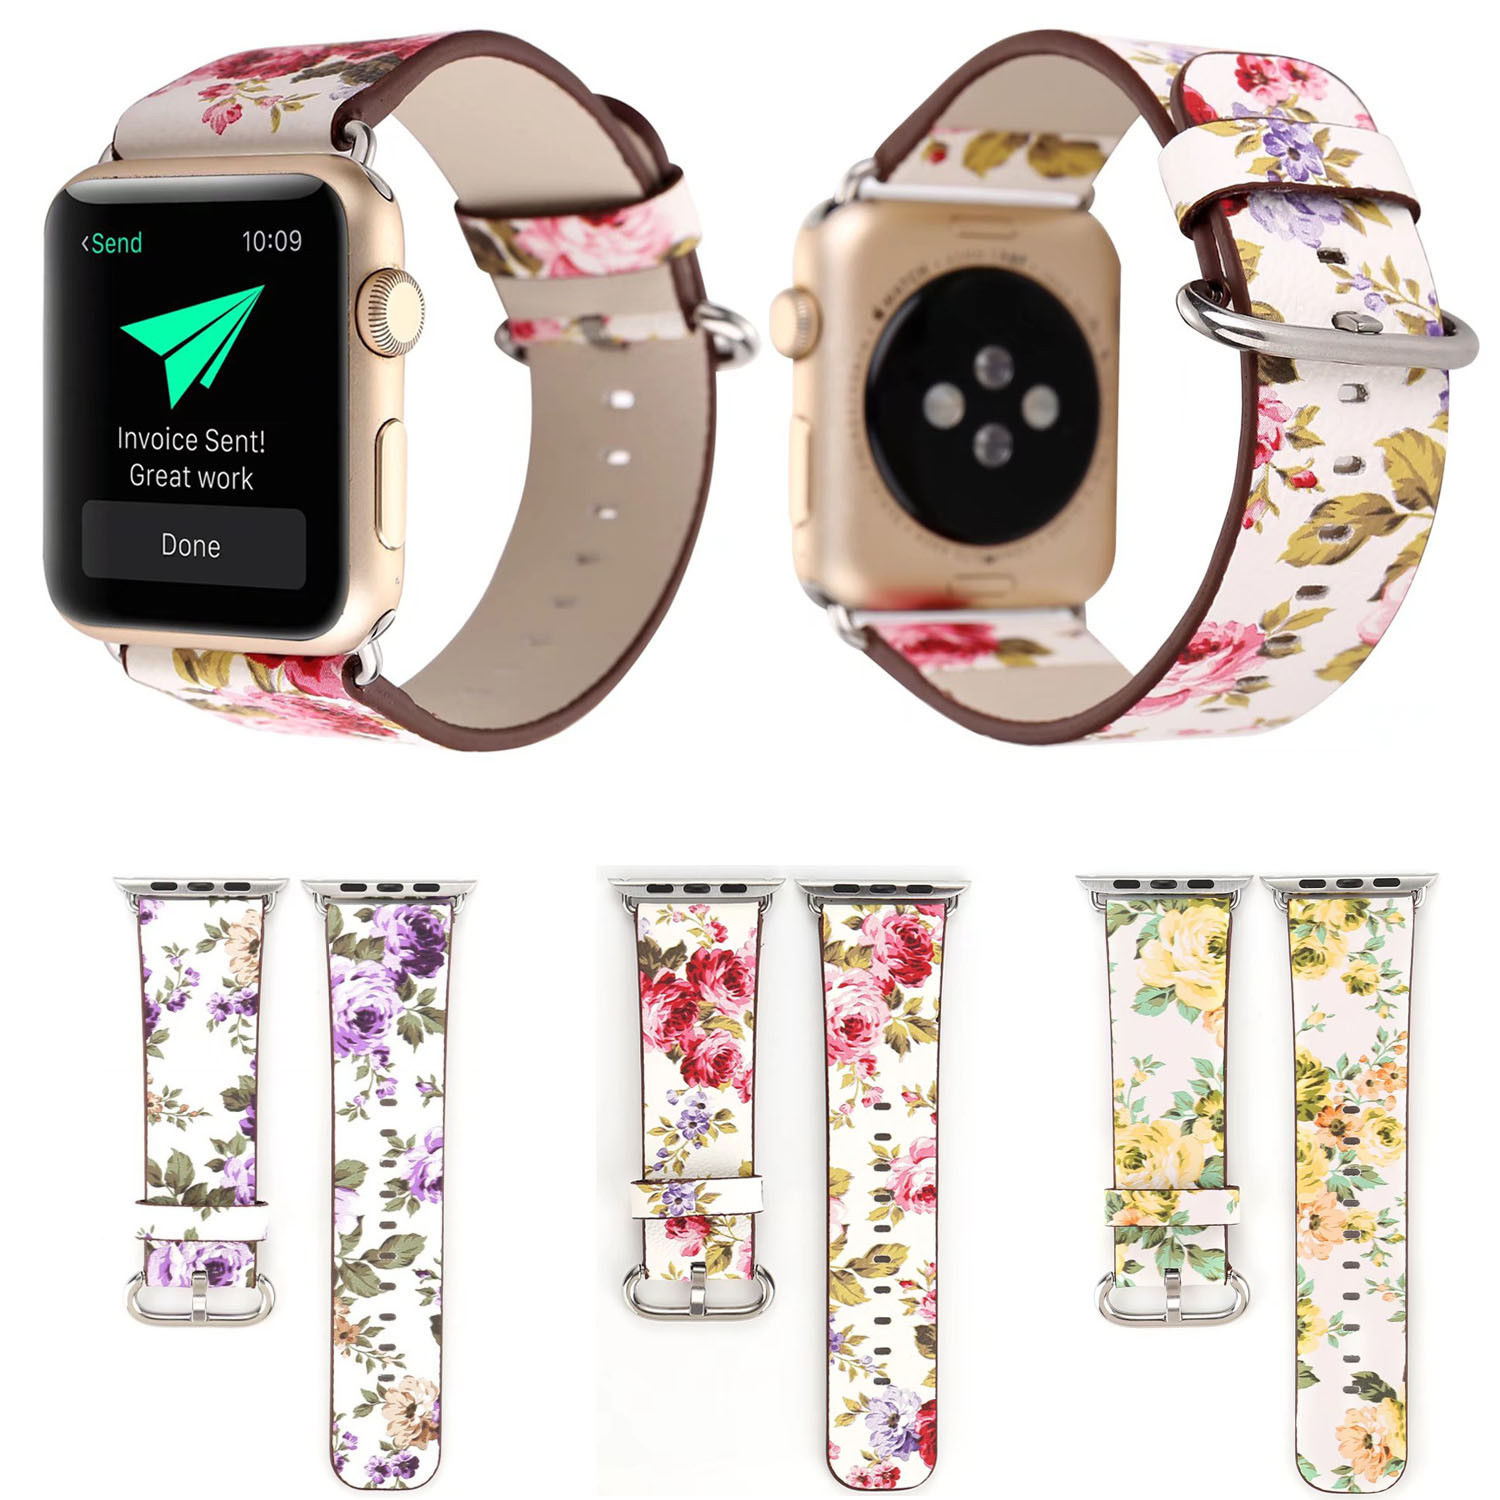 Floral Genuine Pu Leather Strap Watch Band Bracelet For Apple Watch Series 3 2 1 Ebay Fashion Leather Wristbands Apple Watch Leather Watch Bands